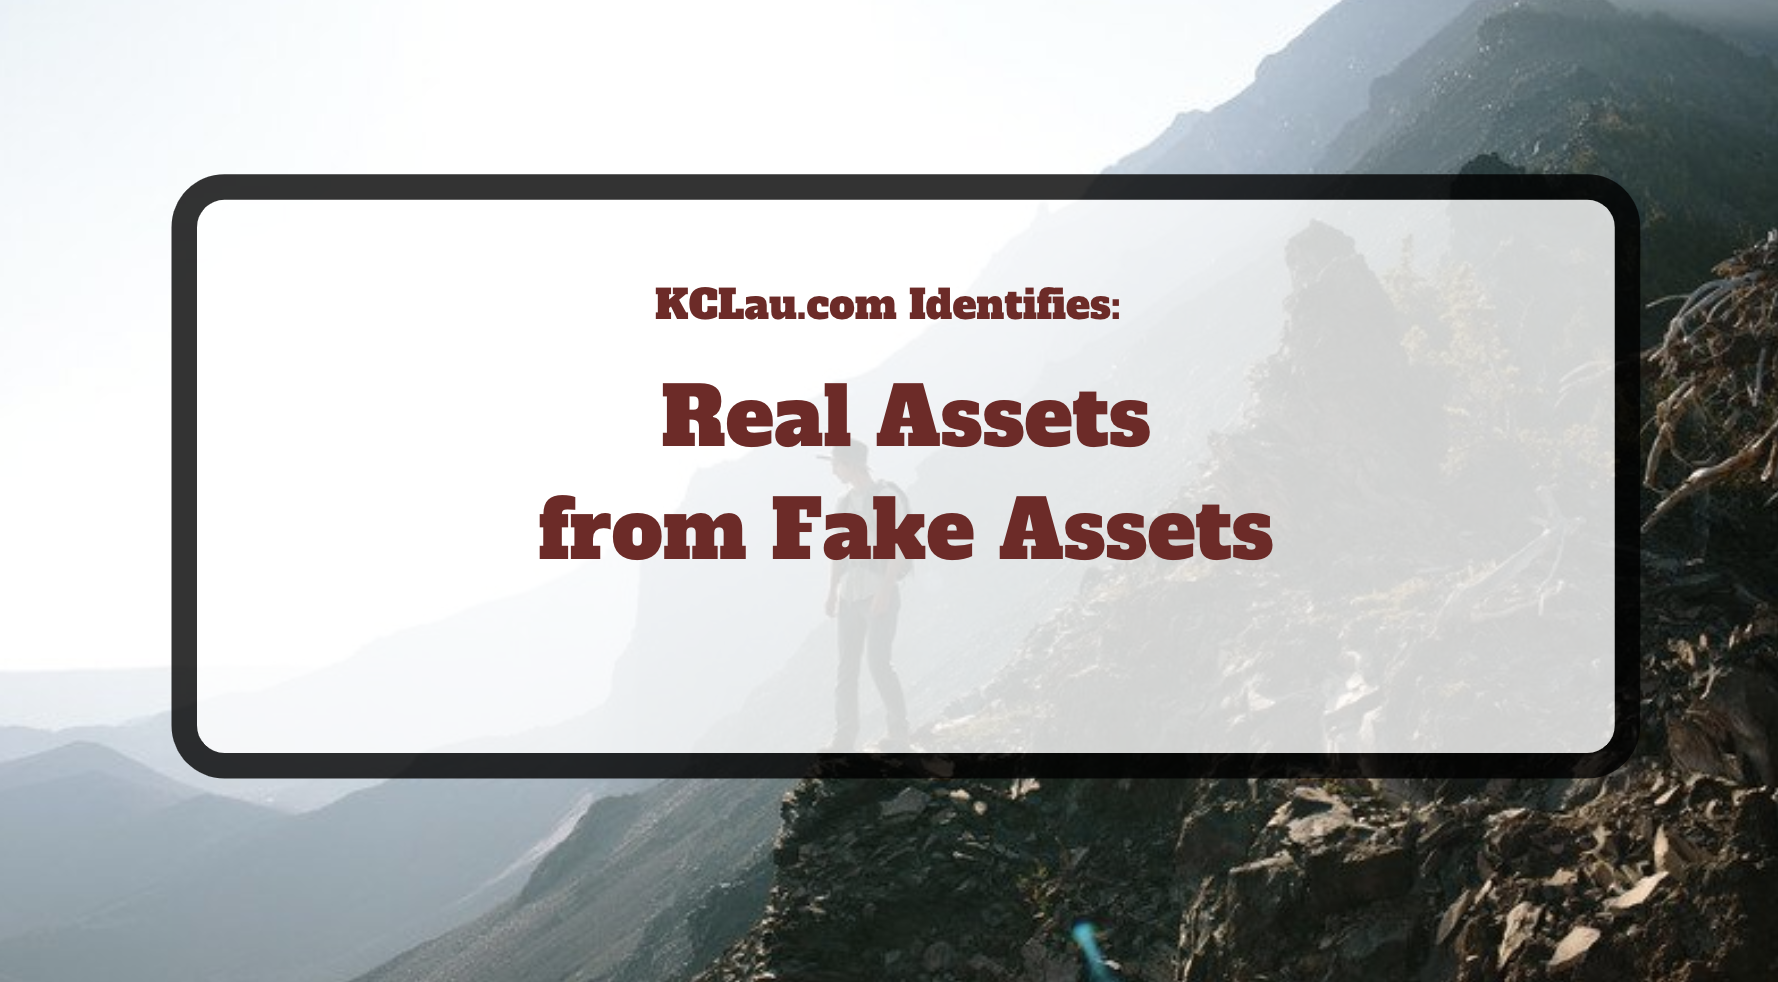 Fake Assets vs Real Assets